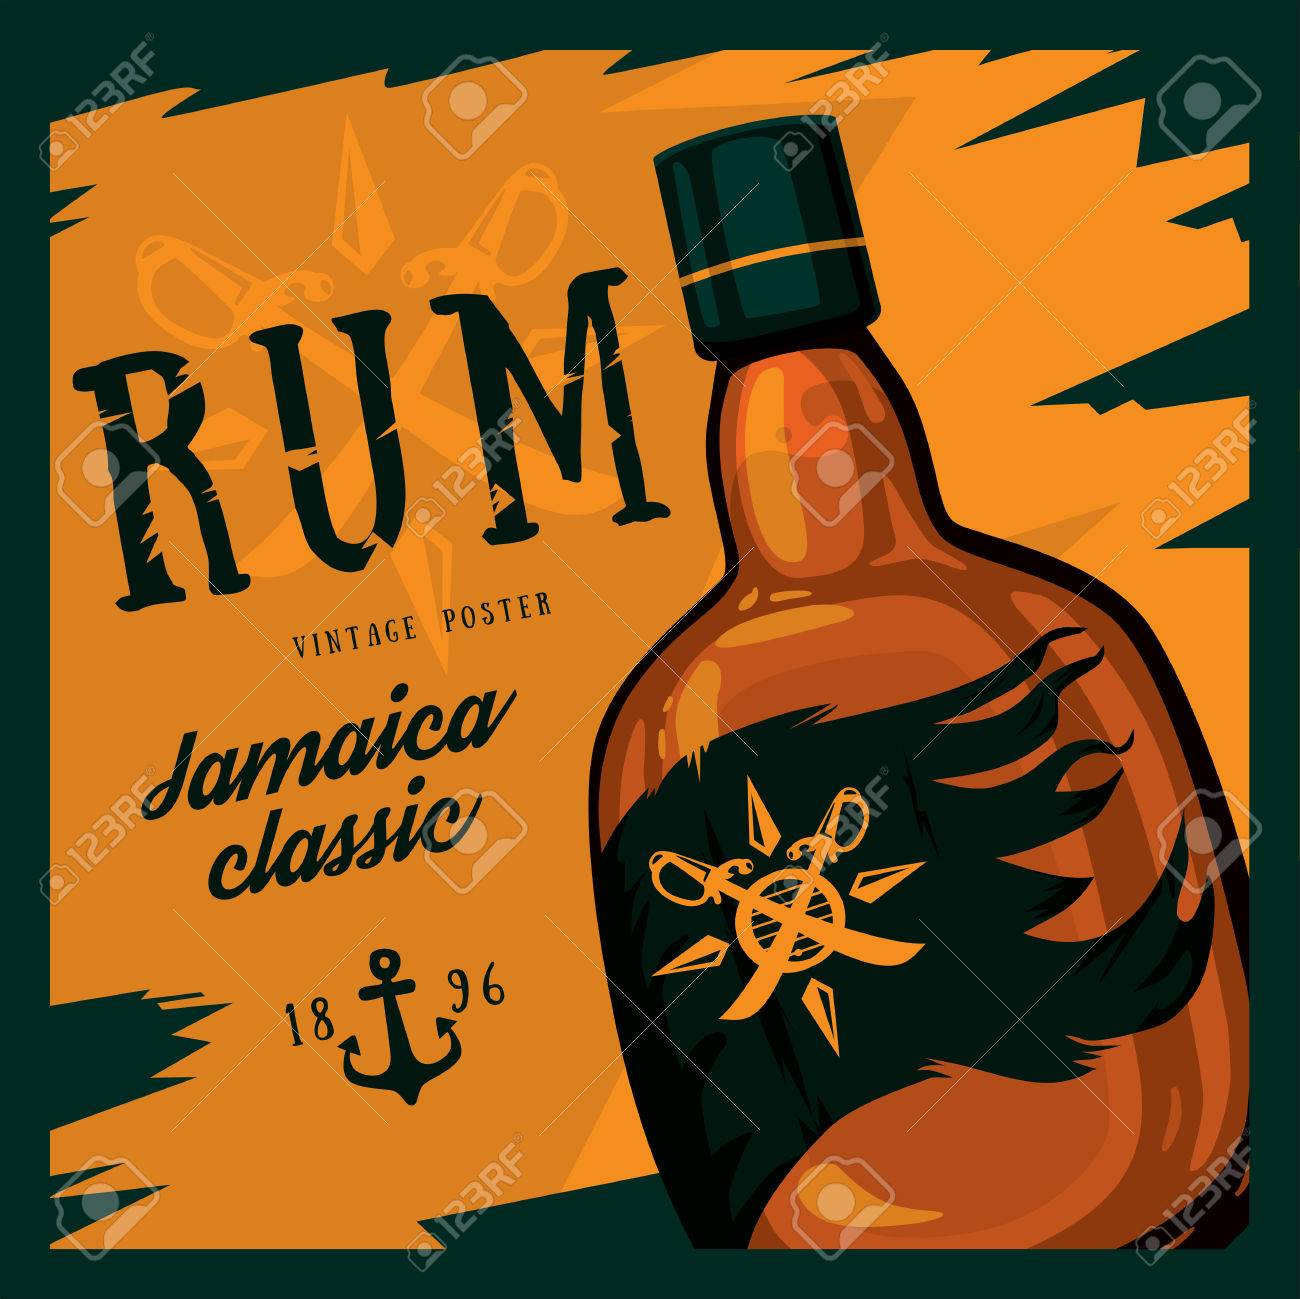 Rum or rhum glass bottle with swords on compass and anchor retro or vintage, old looking poster. Jamaica classic alcohol beverage. Can be used for bars or restaurant advertising theme - 60019211